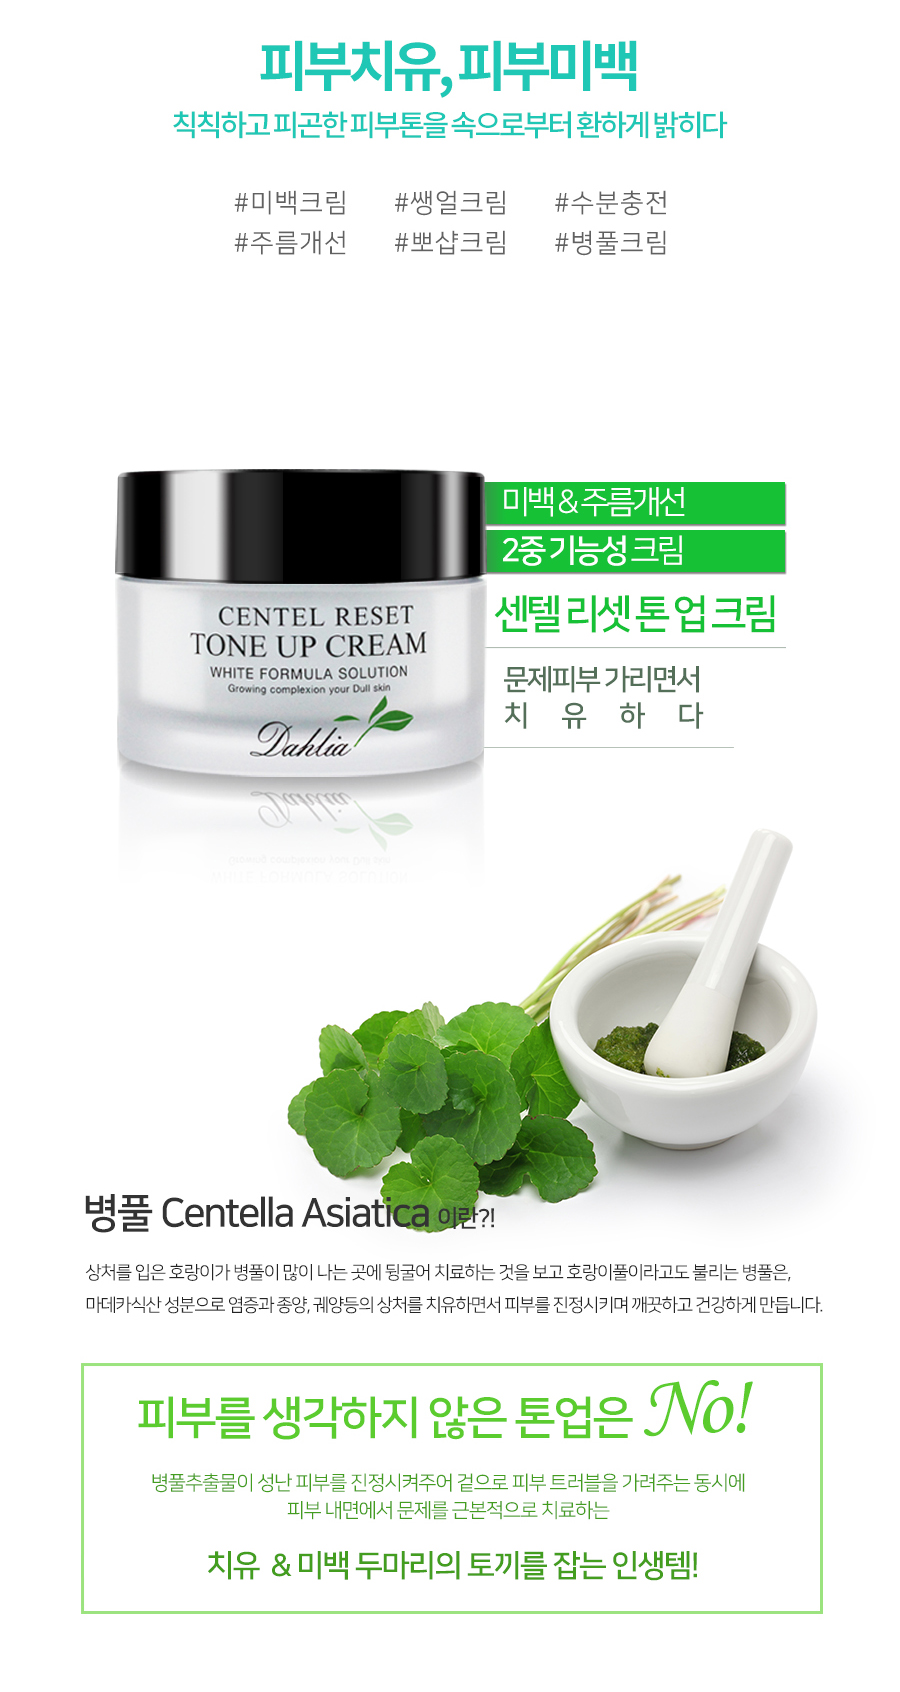 korean_cosmetic_tone_up_cream_base_makeup_Dahlia_centel_Reset_Cream 02